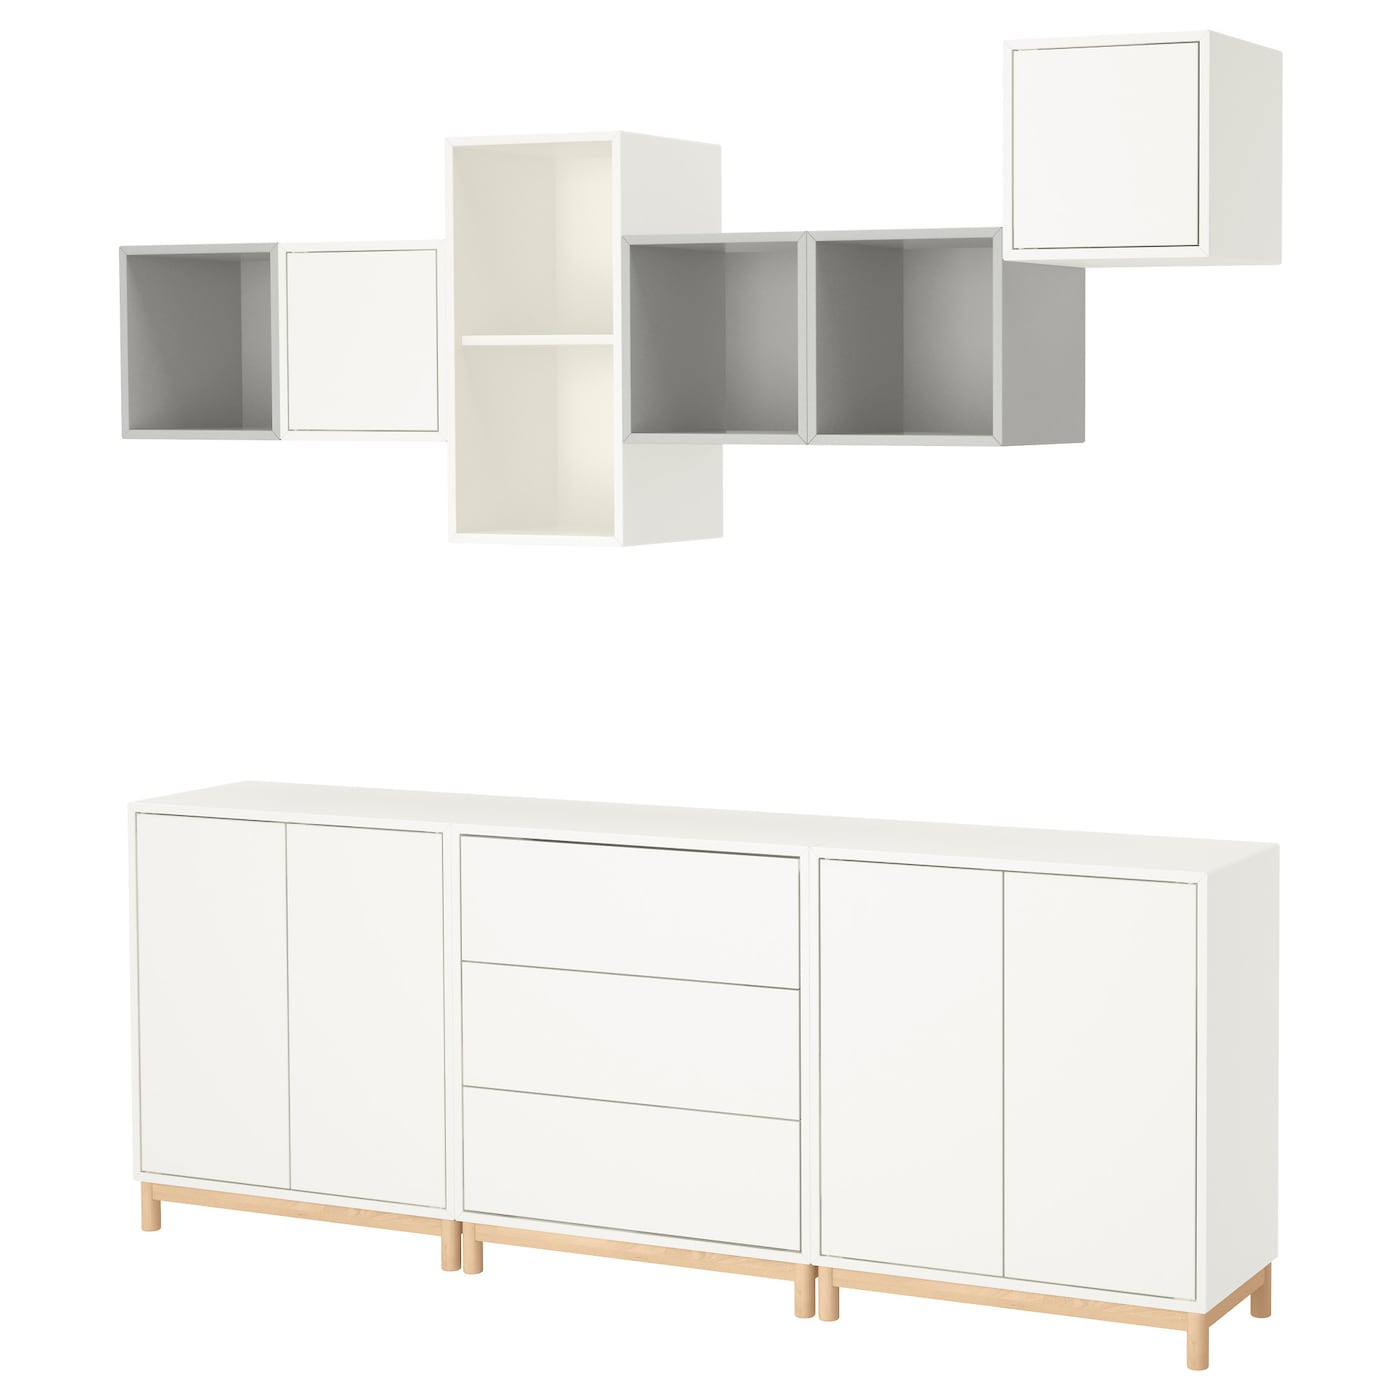 eket cabinet combination with legs white light grey 210 x 35 x 210 cm ikea. Black Bedroom Furniture Sets. Home Design Ideas